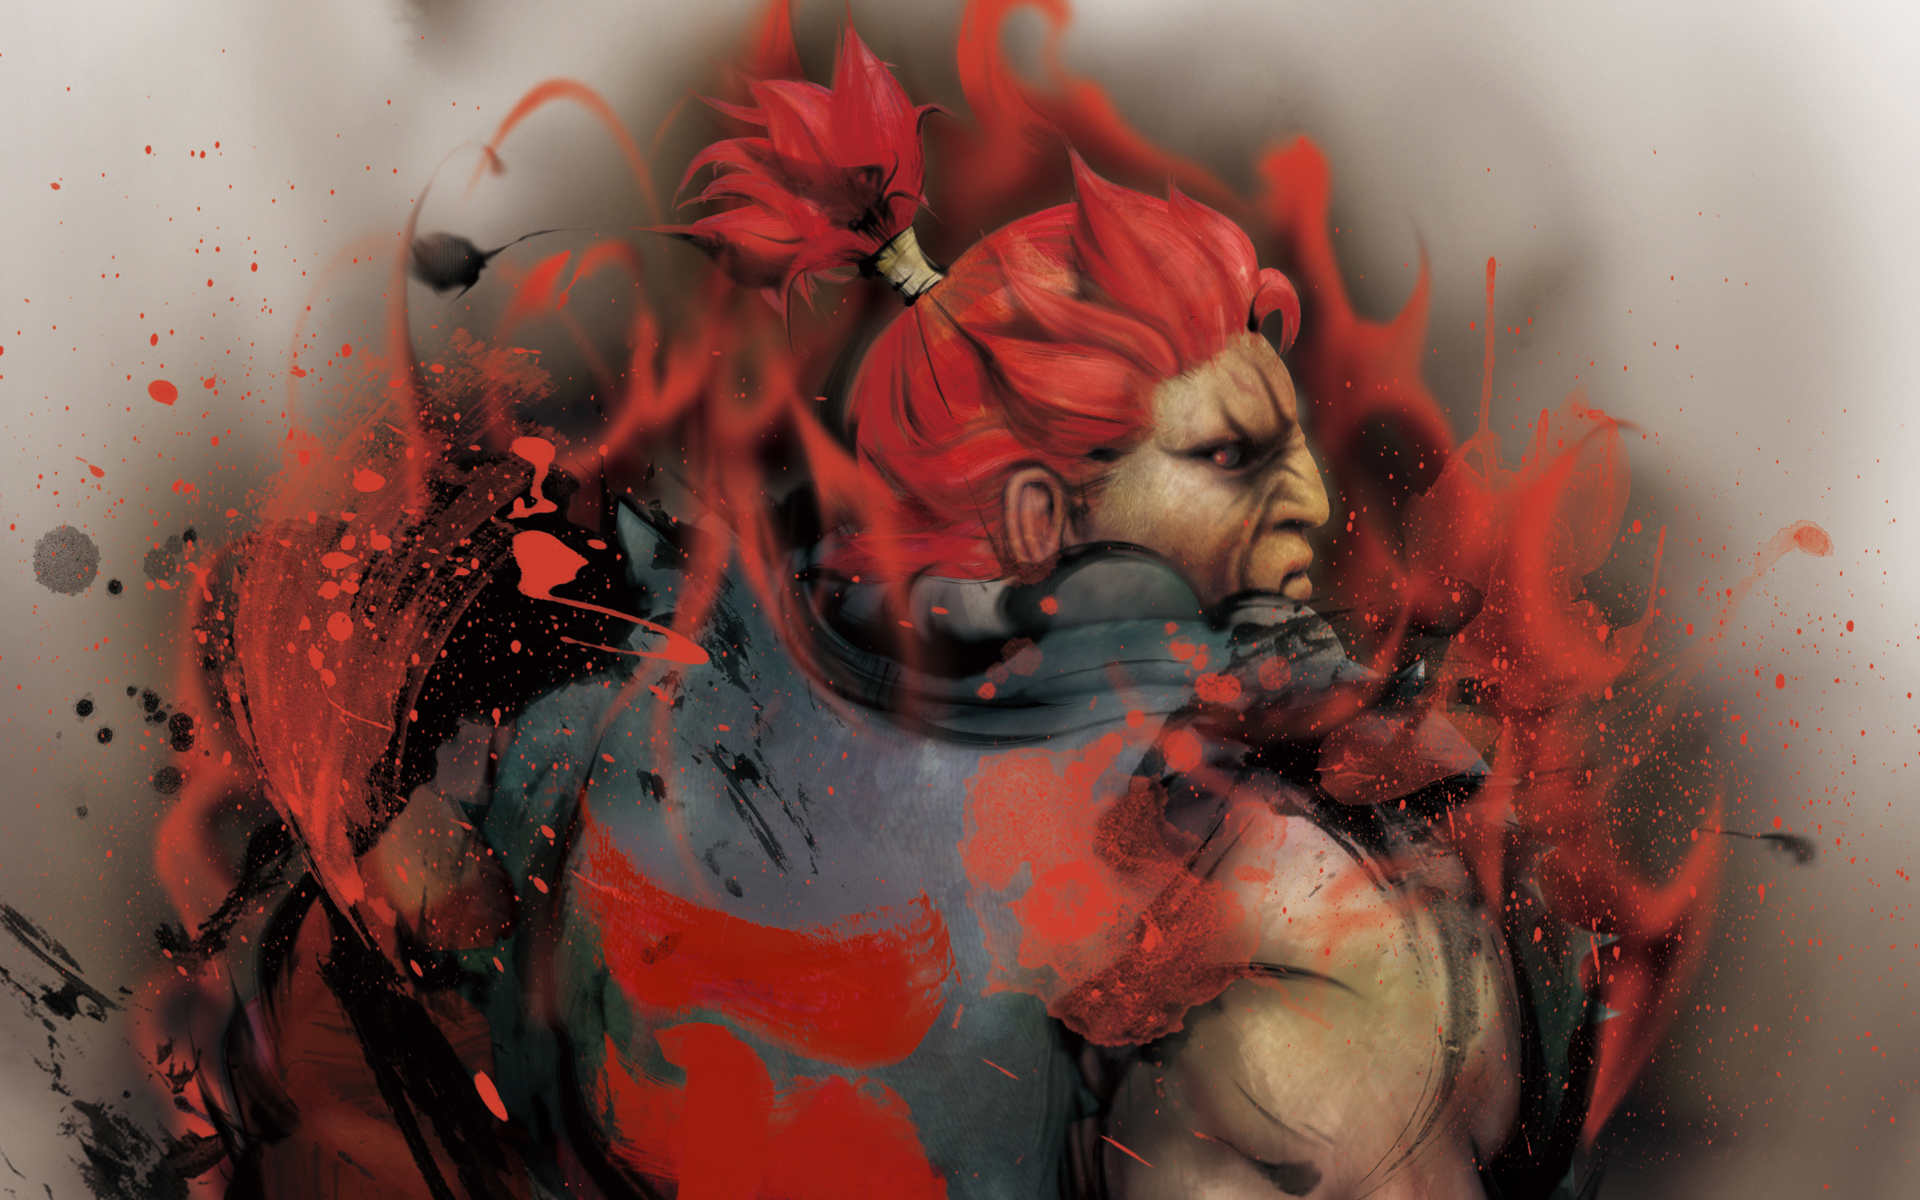 3d Cool Wallpaper Hd For Mobile 11 Akuma Street Fighter Hd Wallpapers Background